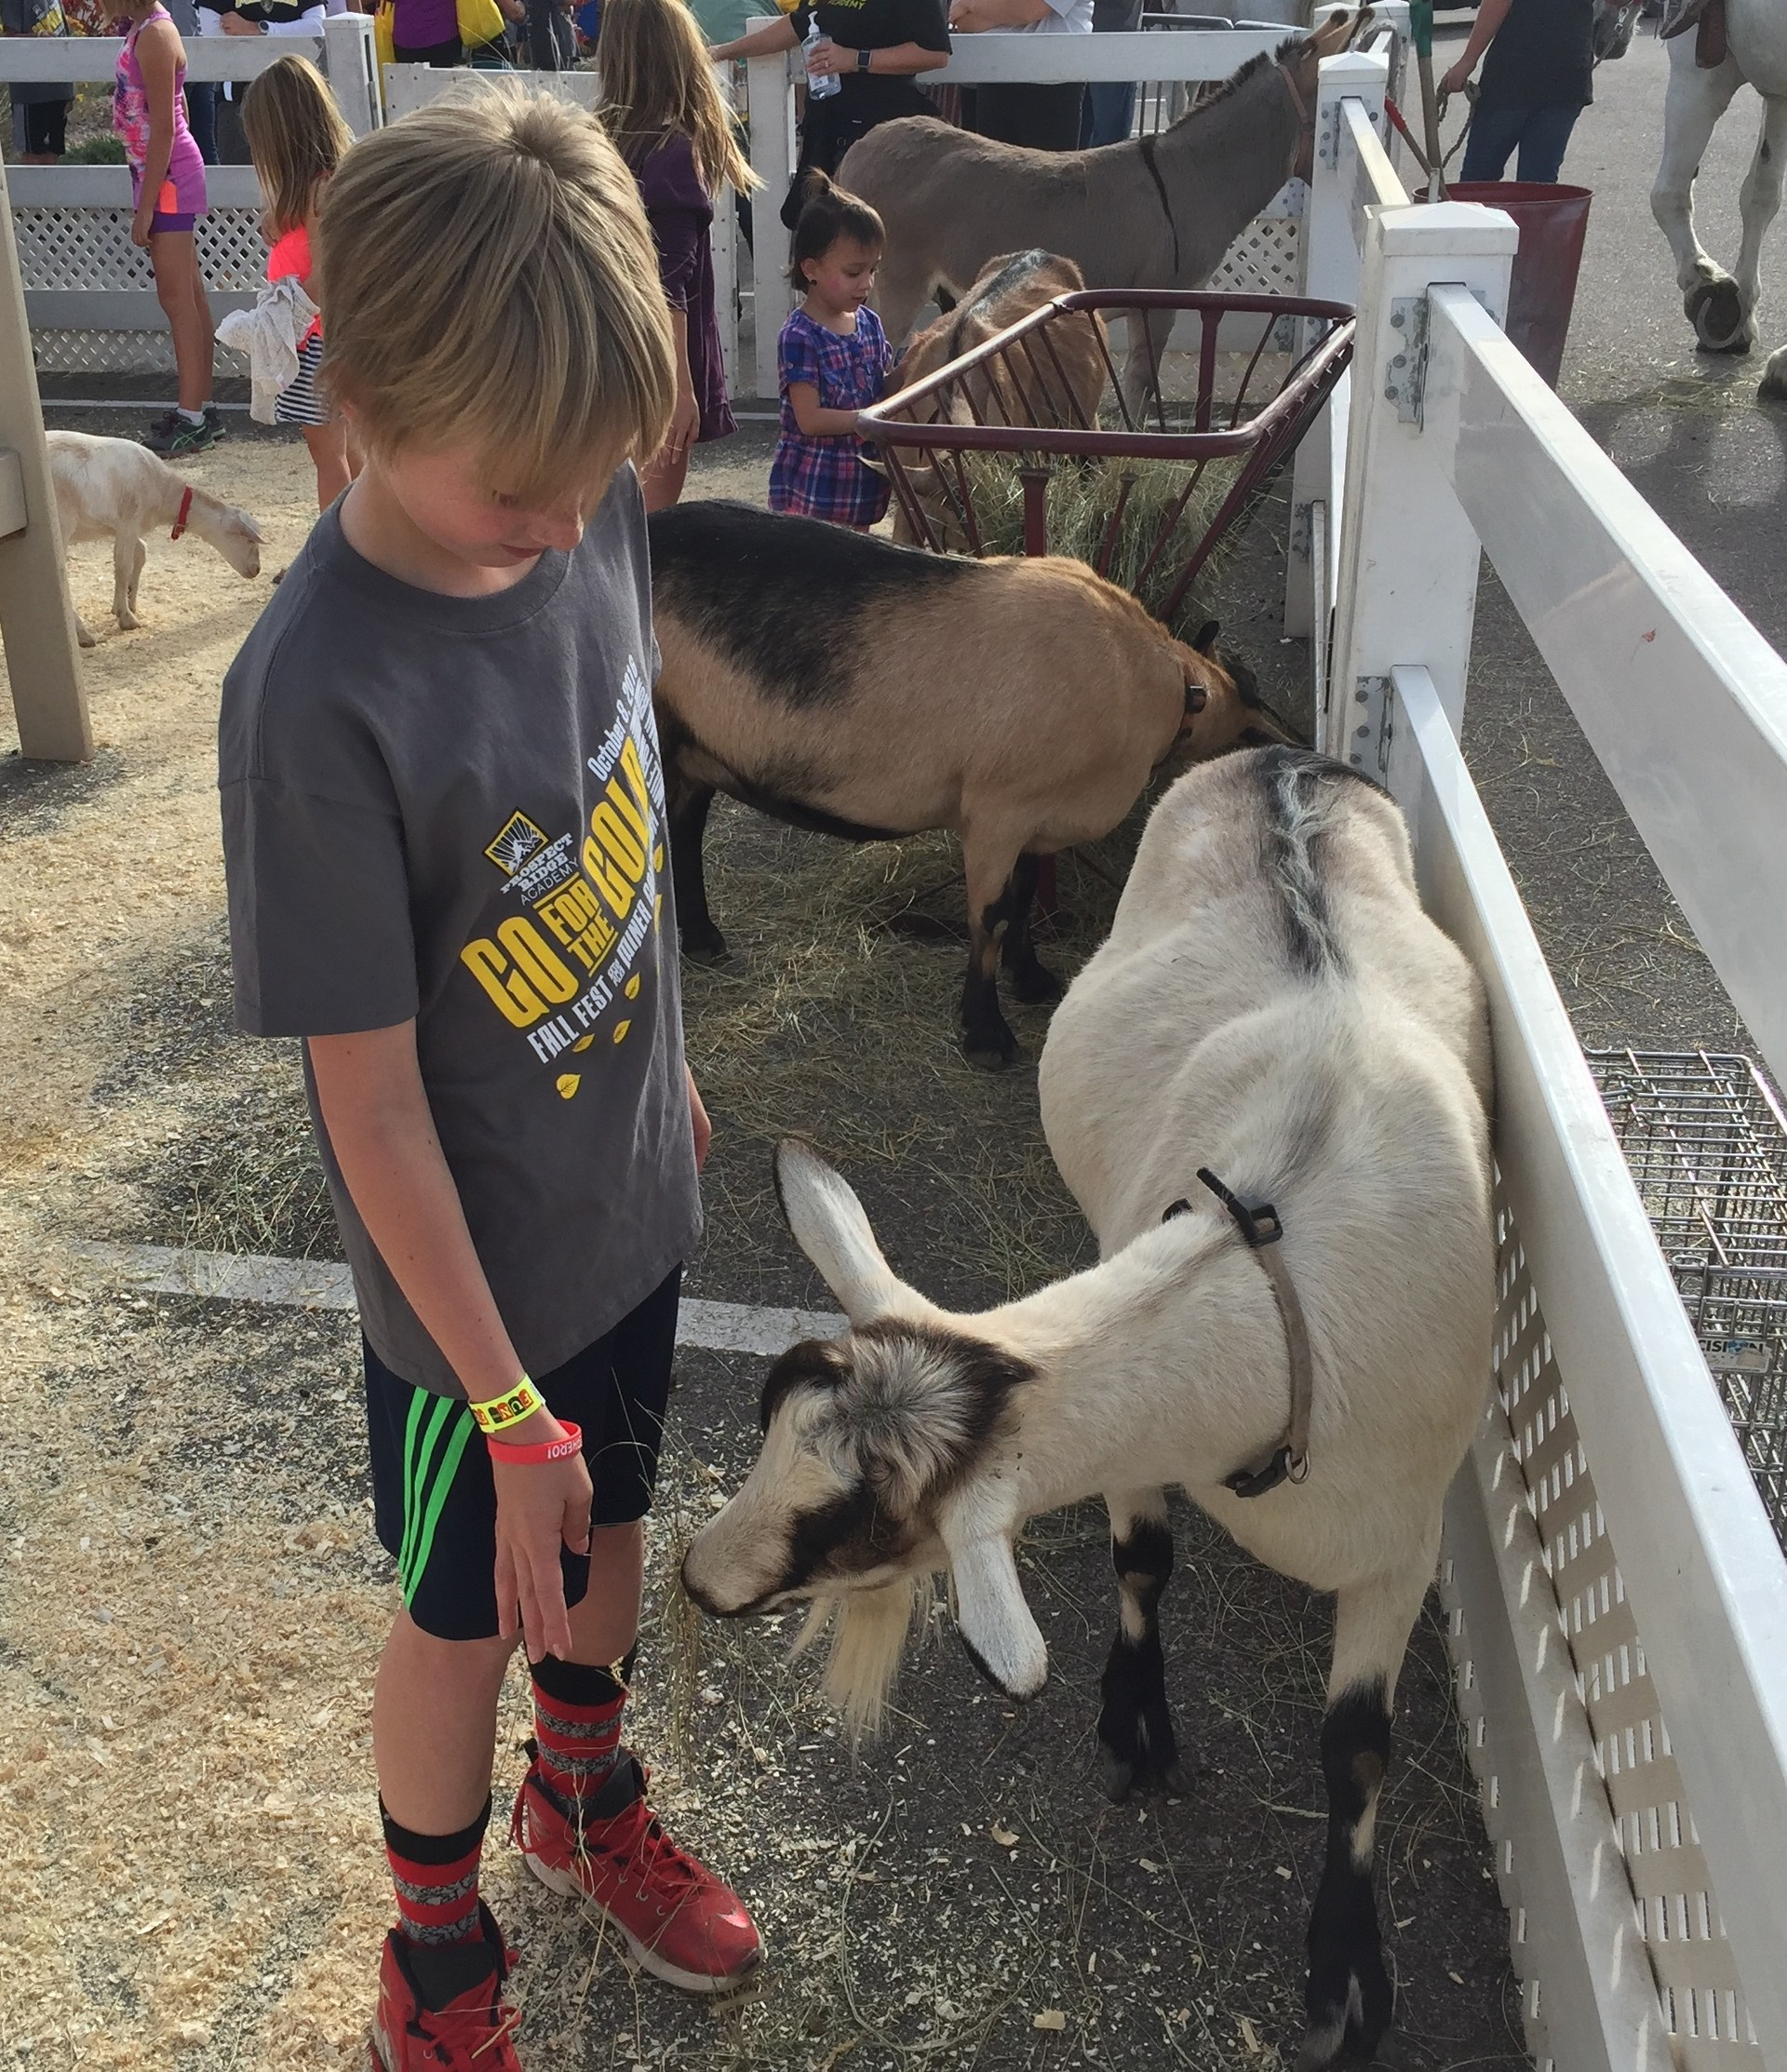 Boy petting a goat